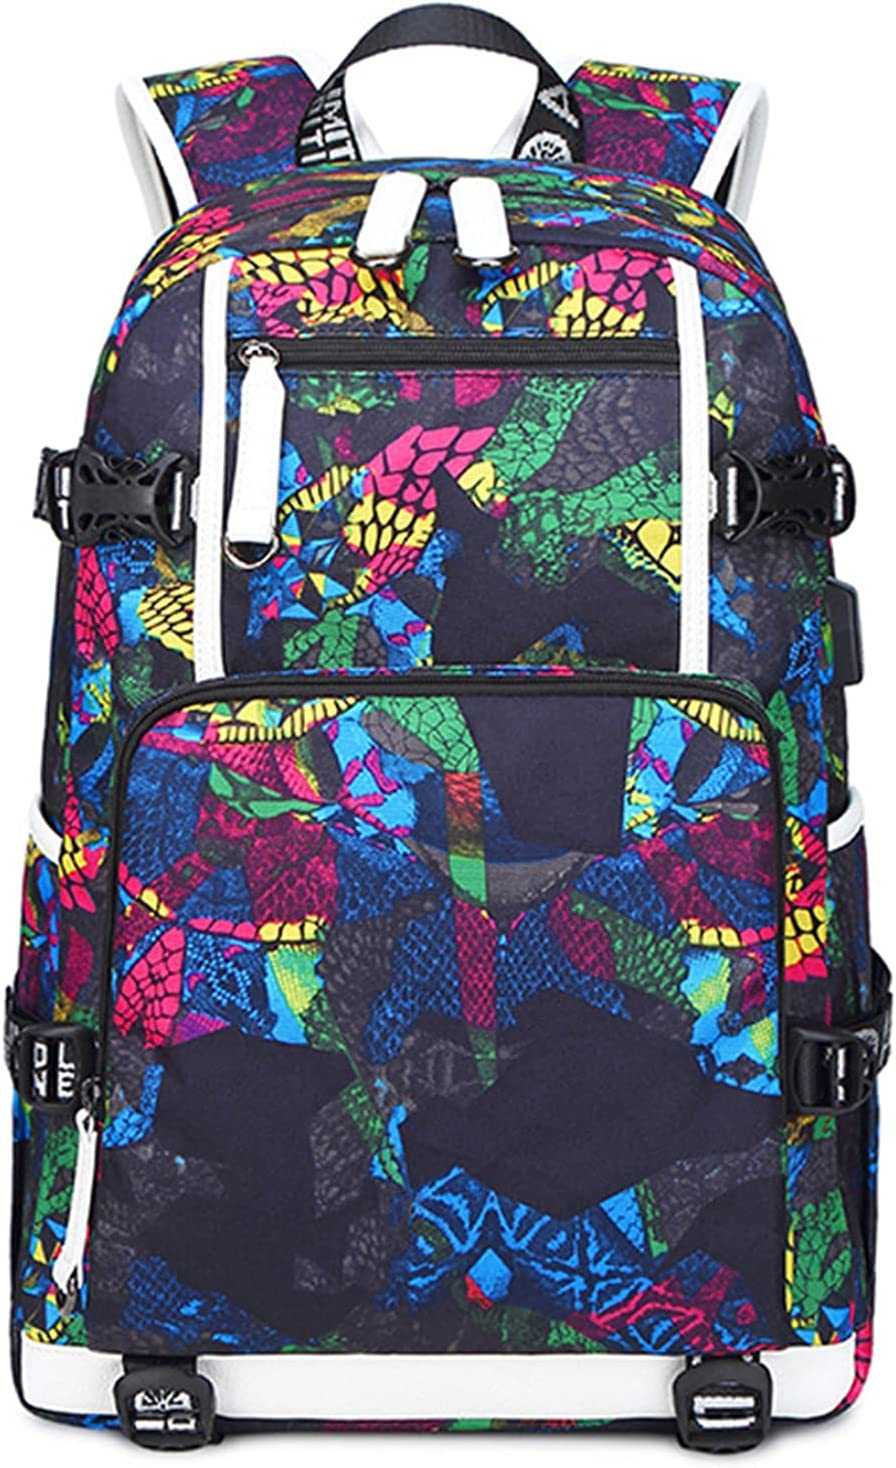 Street Style Oxford School Bags USB Wat Max 84% shipfree OFF Laptop CHARGING Backpack